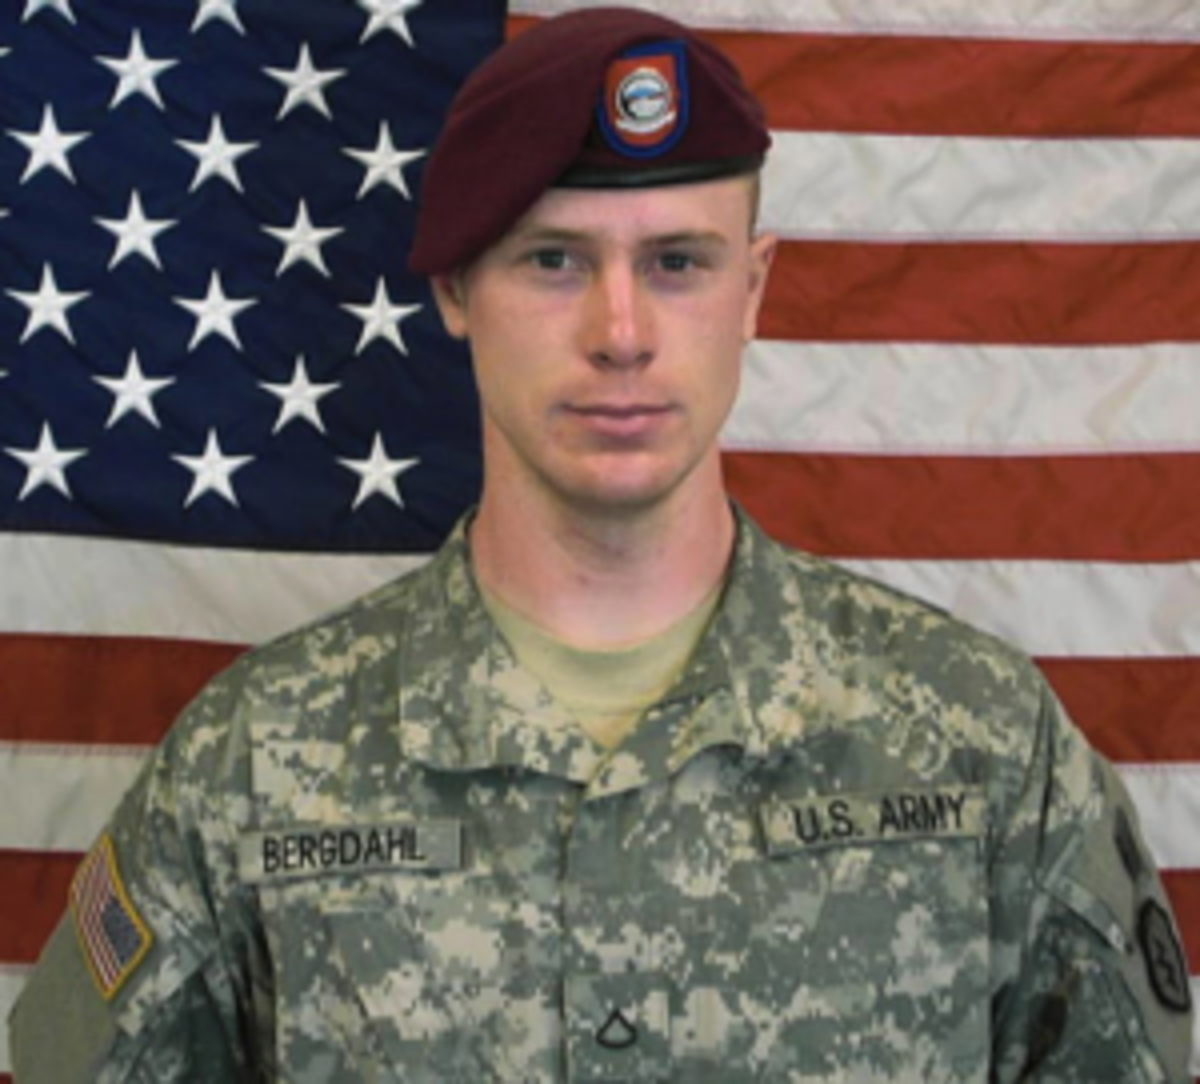 Sgt Beaudry Robert , Blackfoot Company, 1st Battalion, 501st Infantry Regiment, 4th Brigade Combat Team Airborne), 25th Infantry Division. He has been charged with desertion and misbehavior before the enemy.